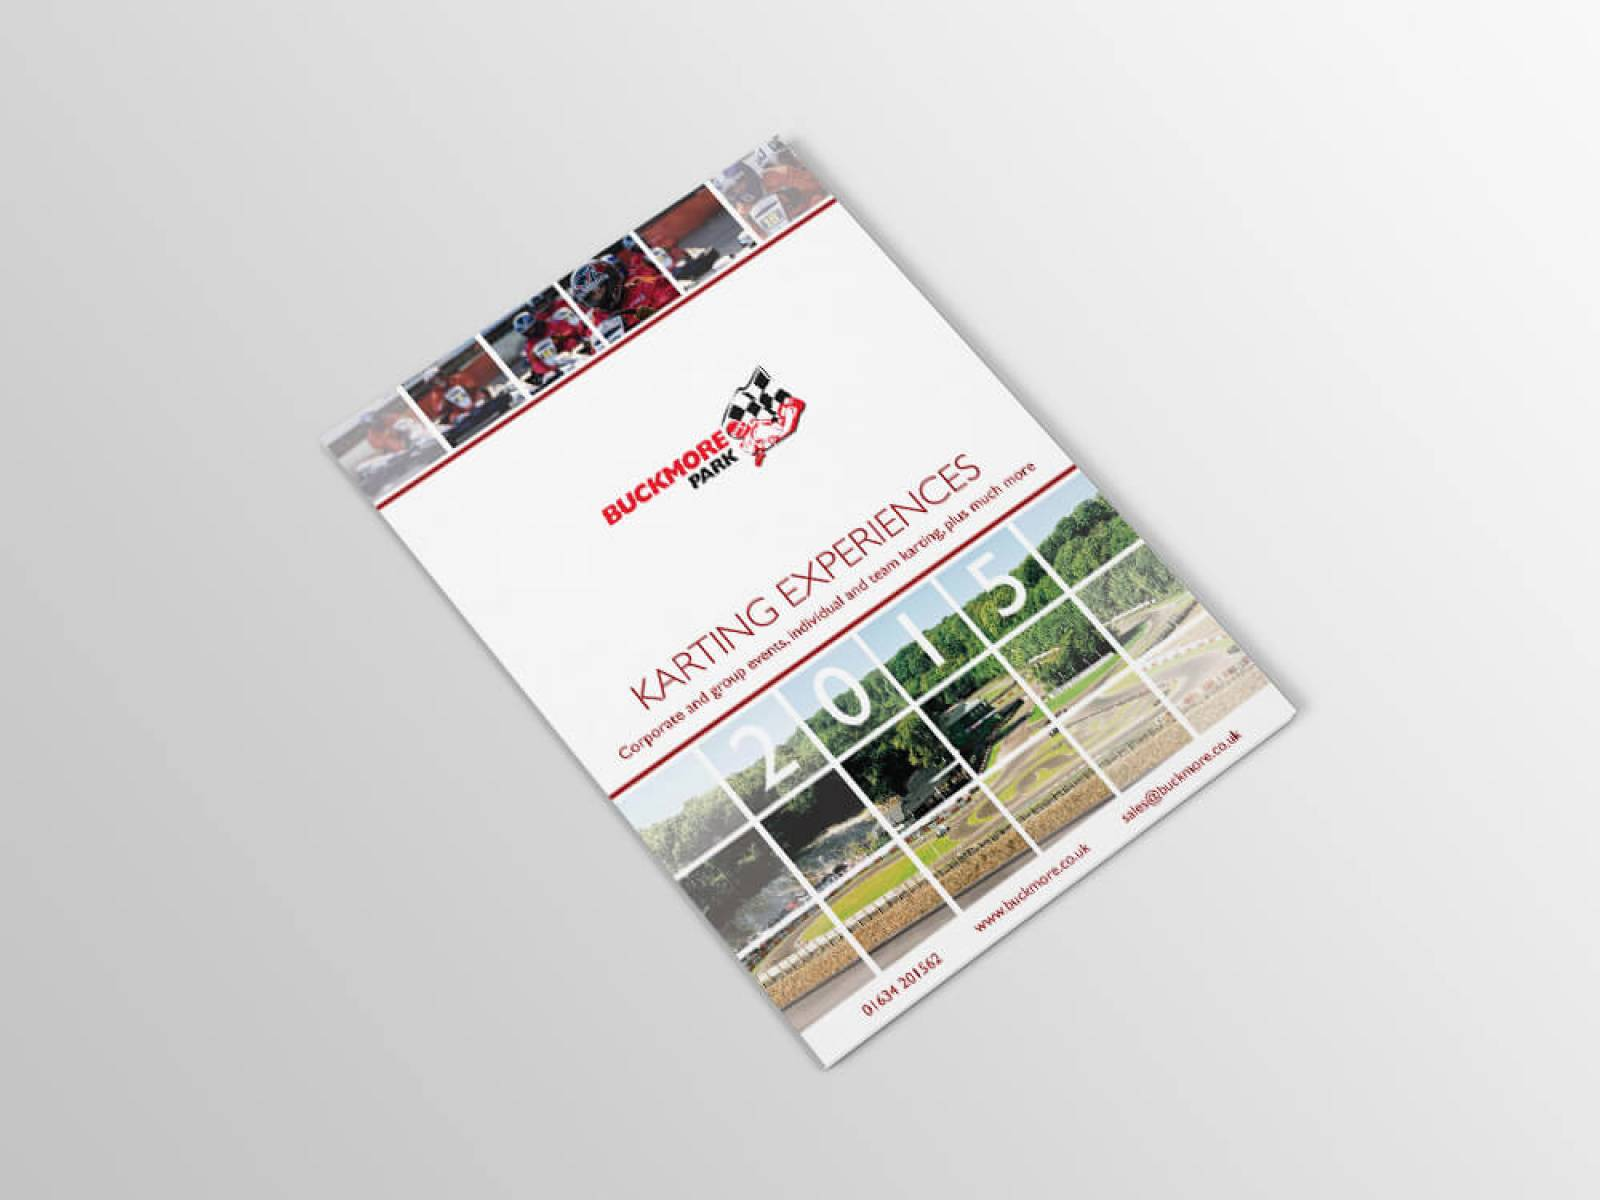 Buckmore-park-brochure-1-design-agency-graphic-design-canterbury.jpg